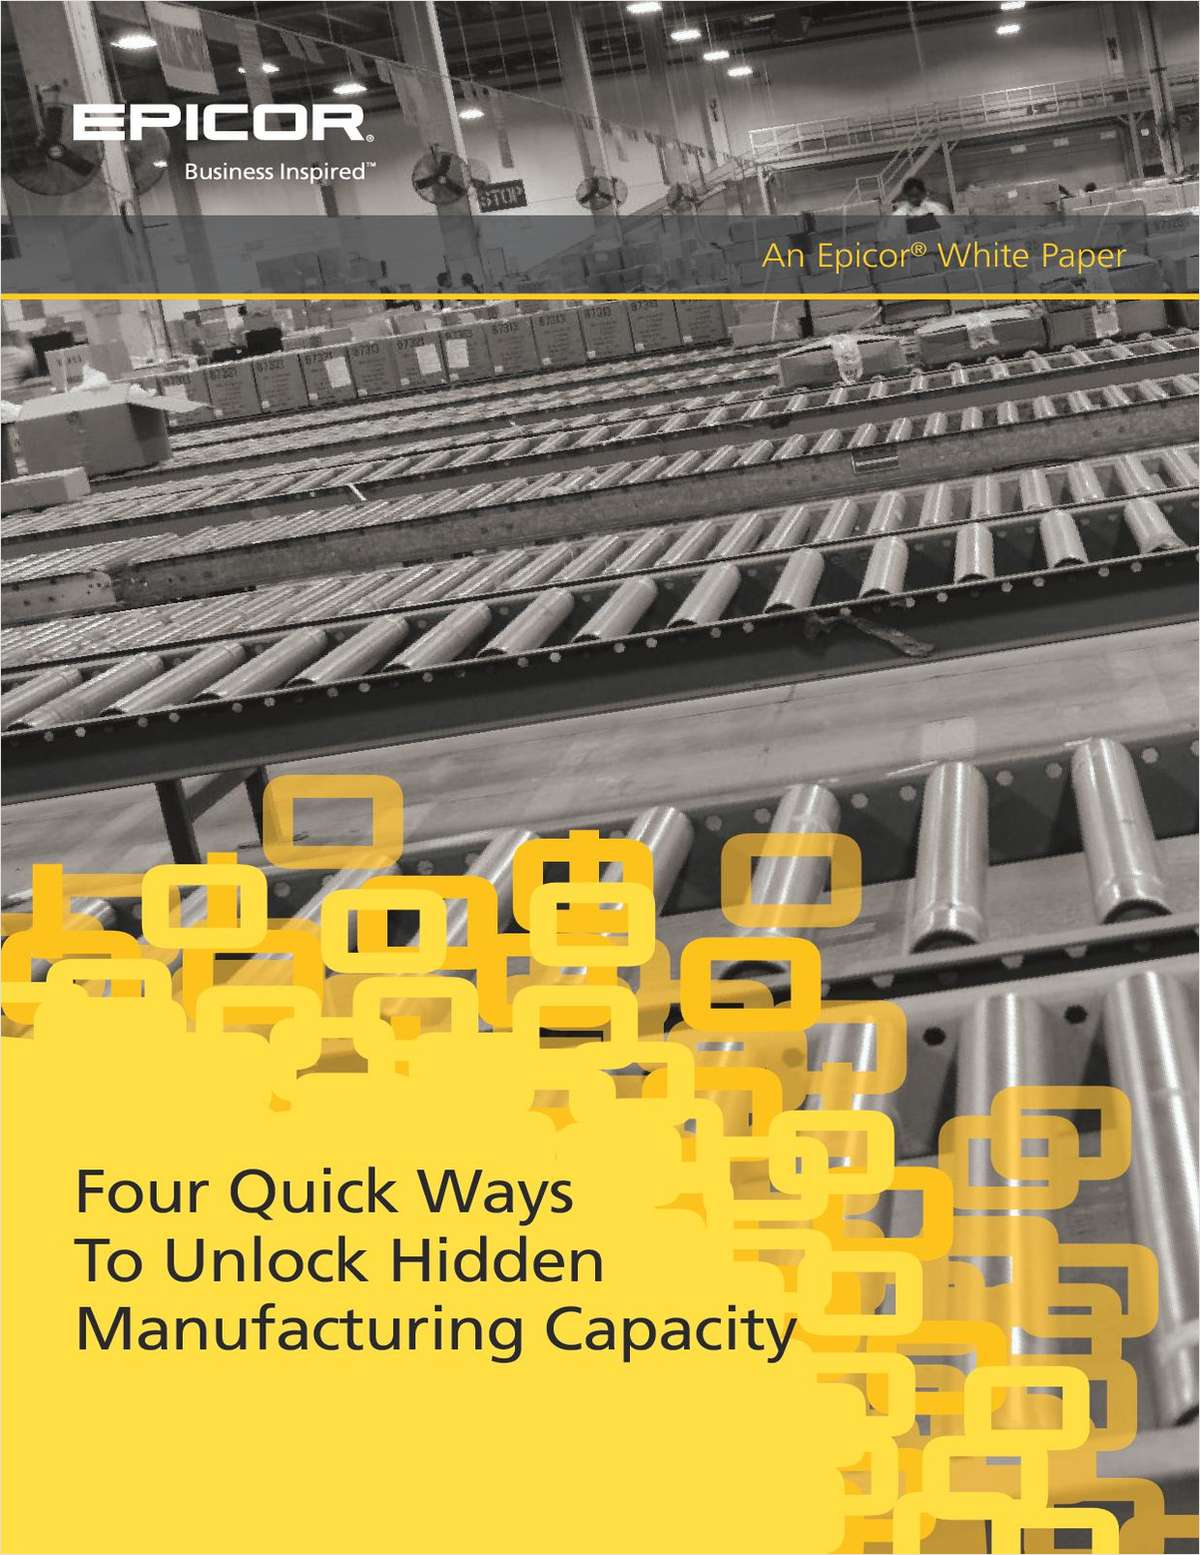 Four Quick Ways to Unlock Hidden Manufacturing Capacity